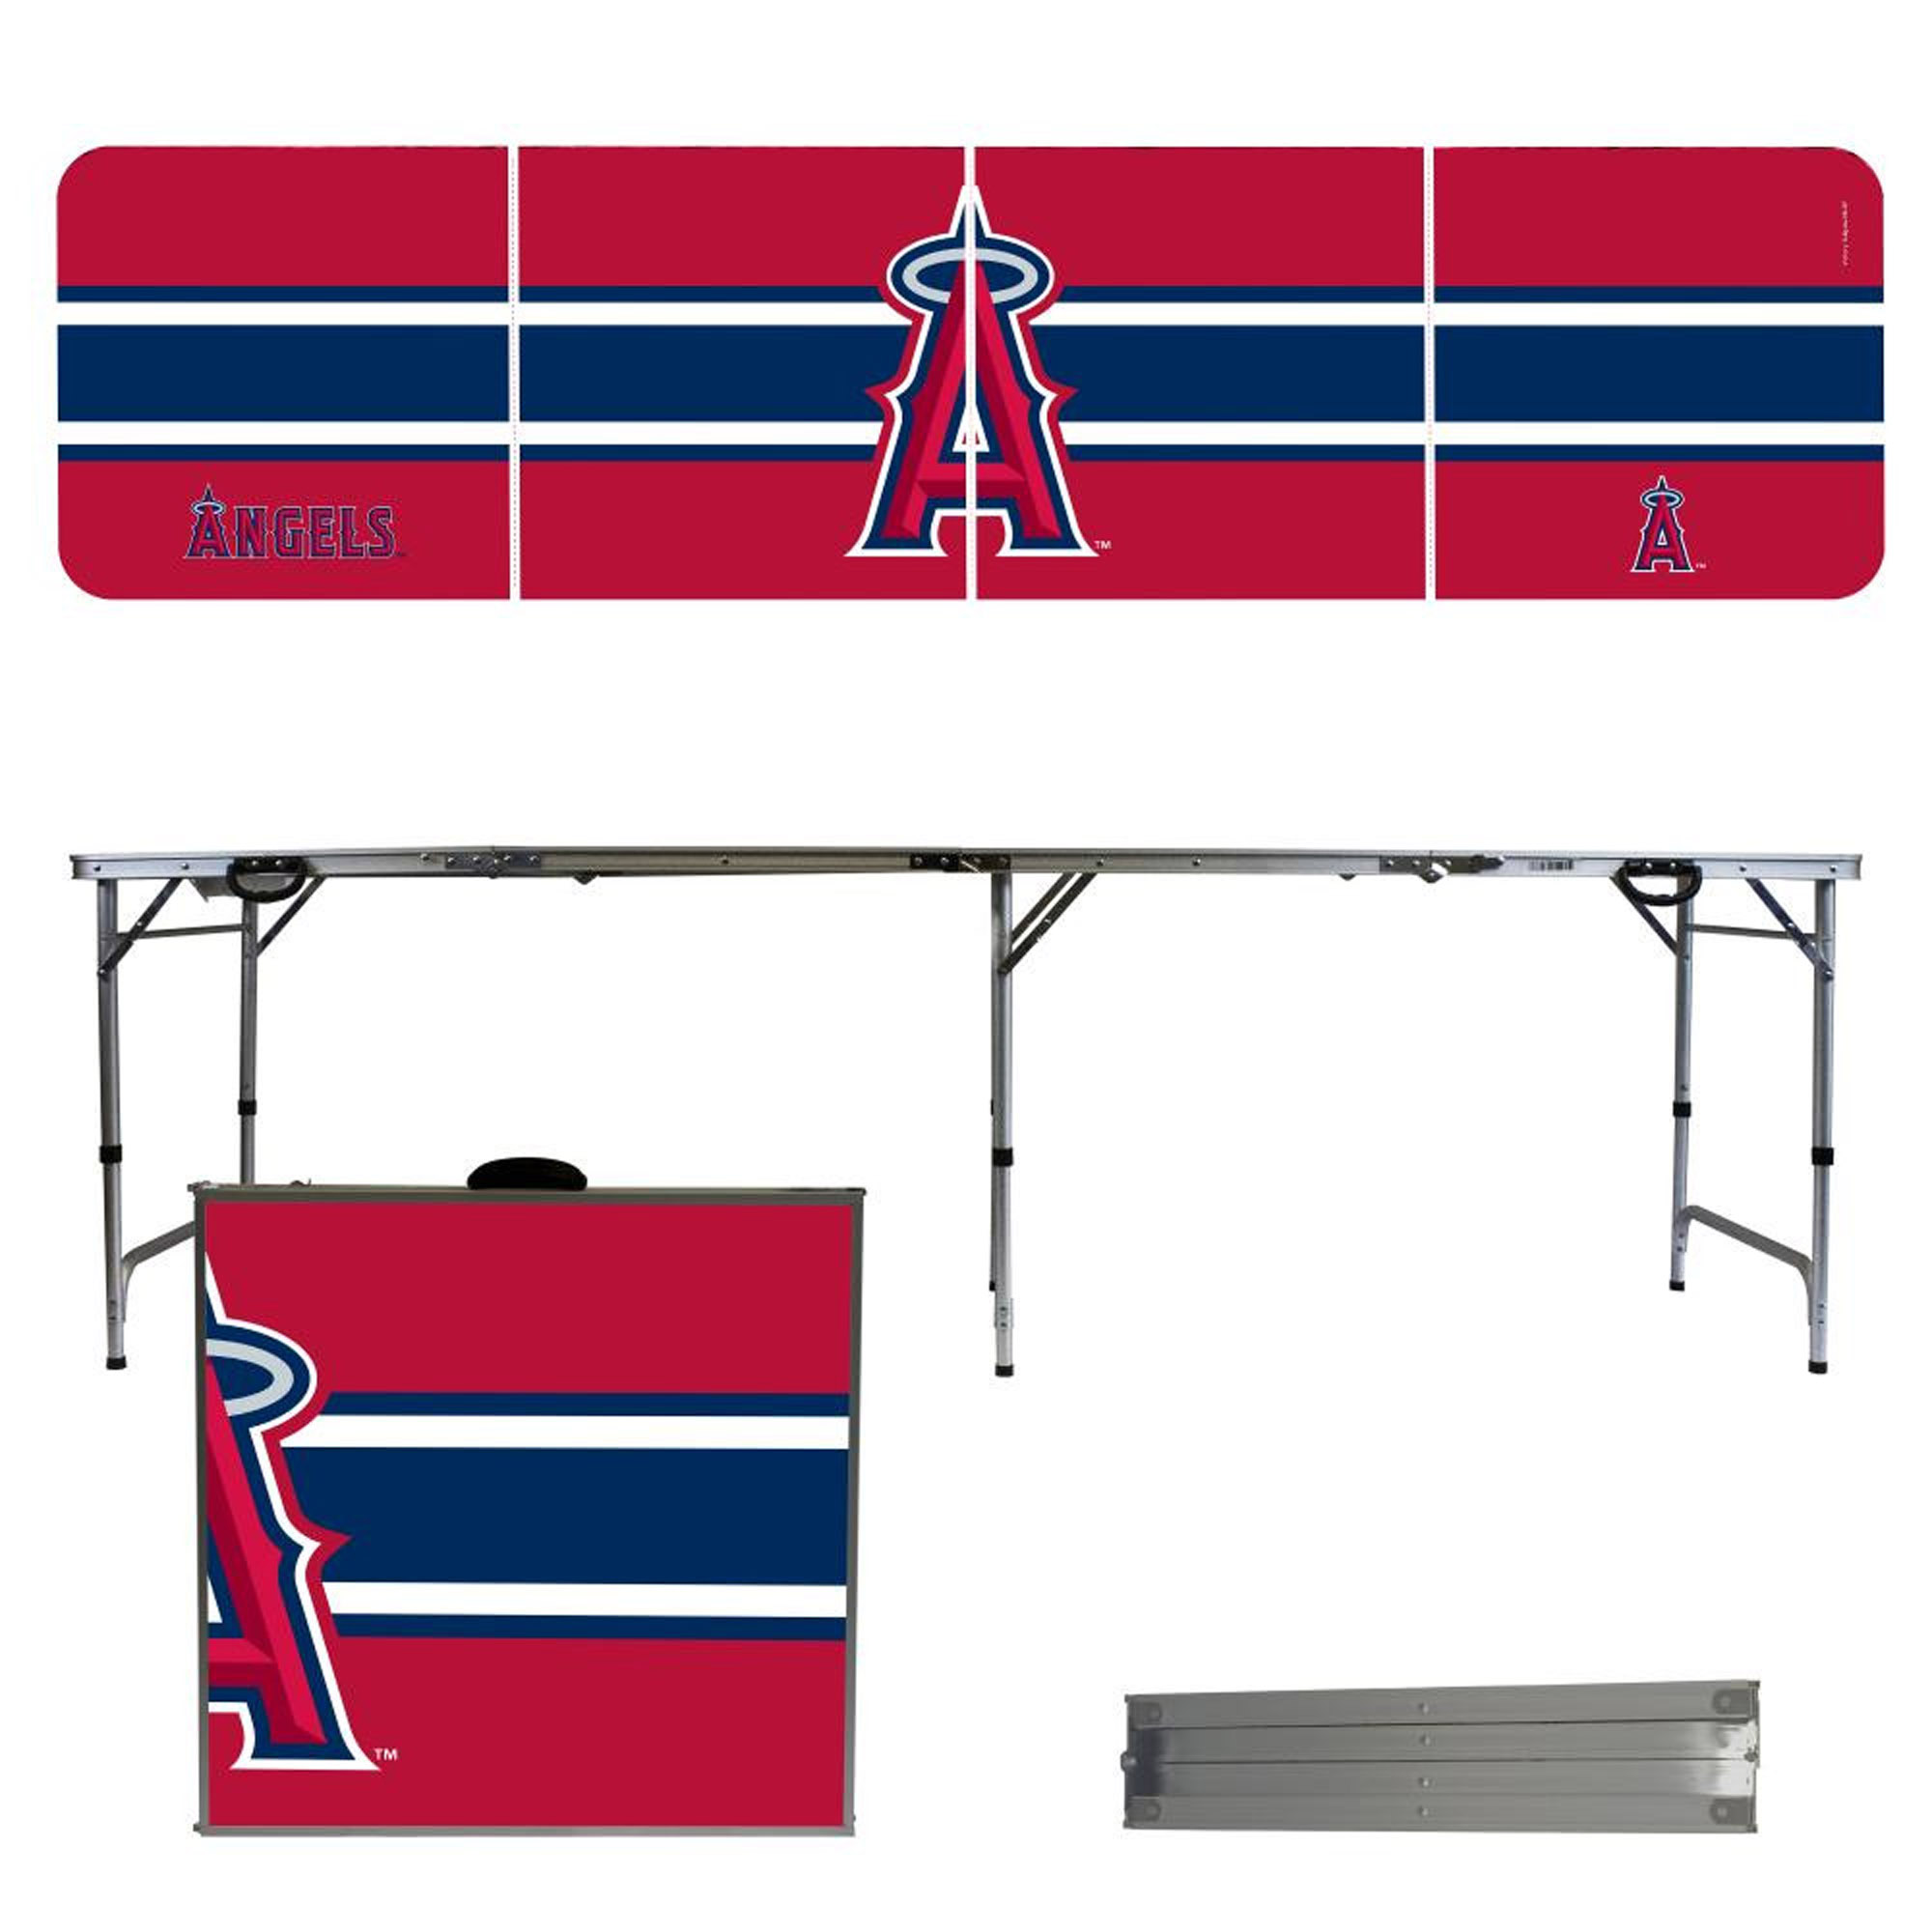 Los Angeles Angels Striped Design 8' Portable Folding Tailgate Table - No Size